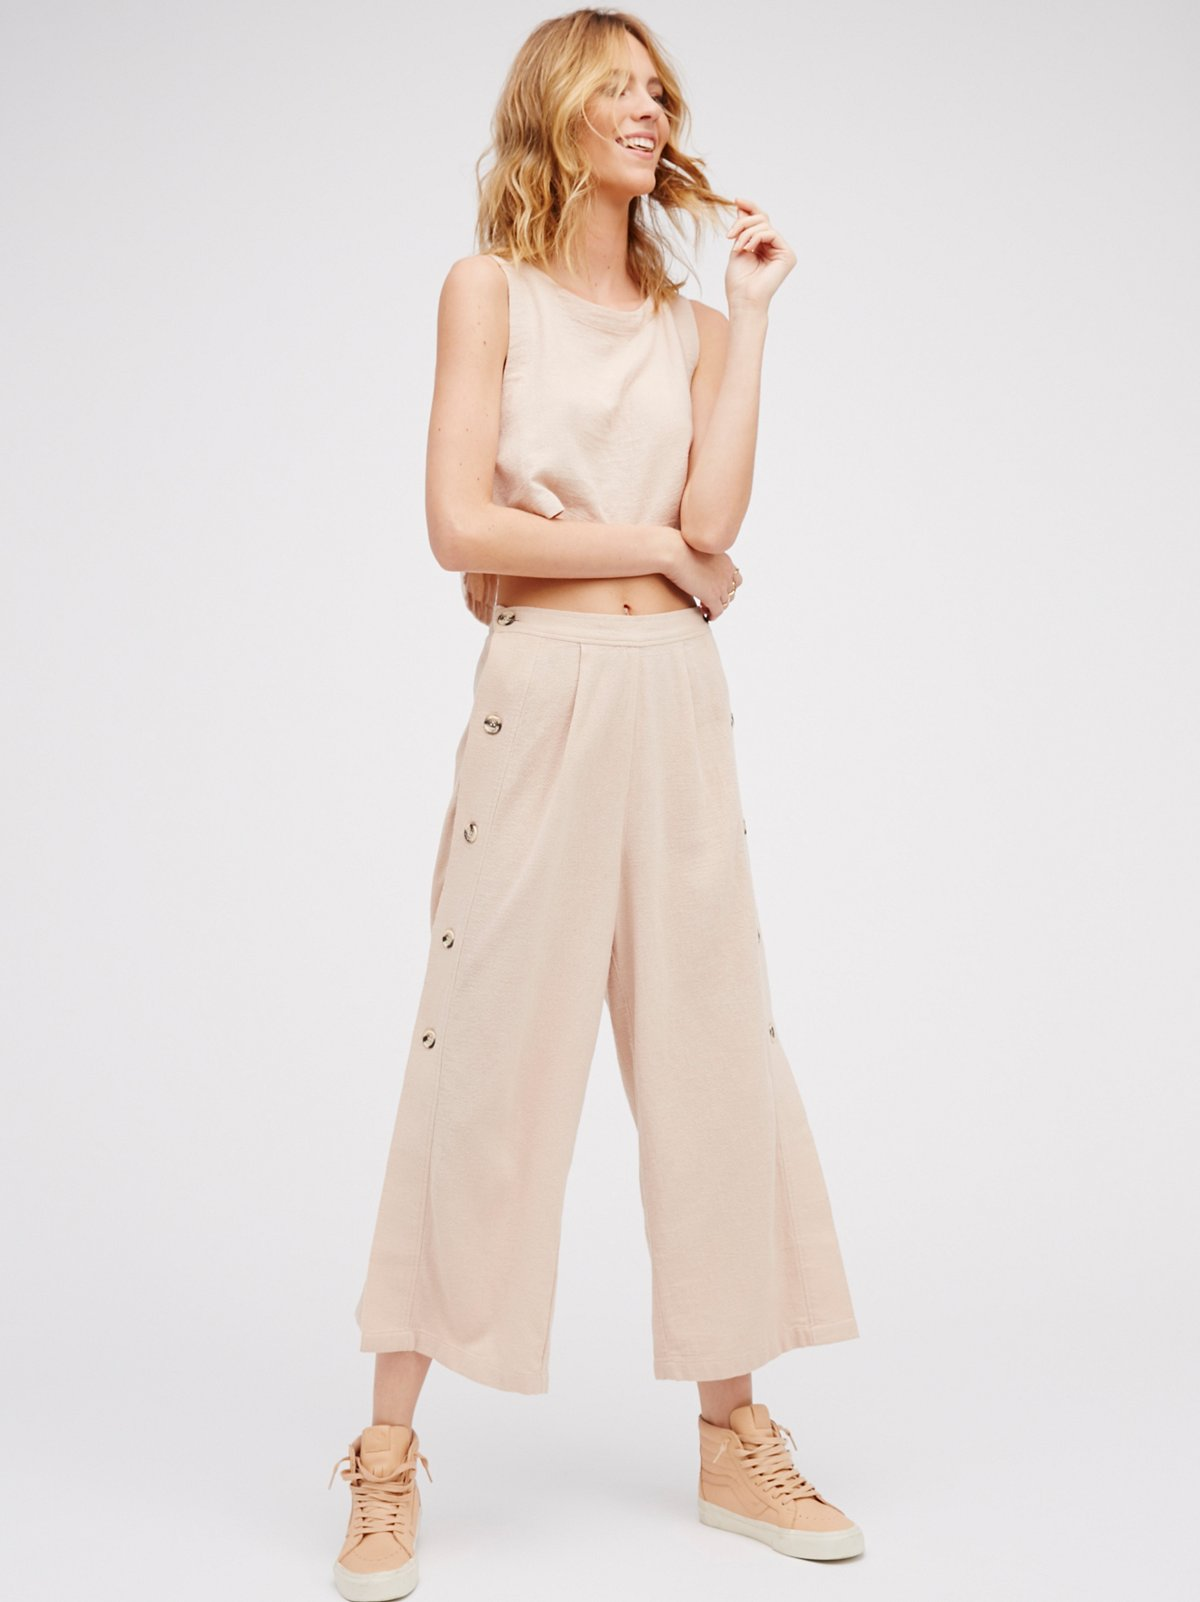 The Annika Pants Set